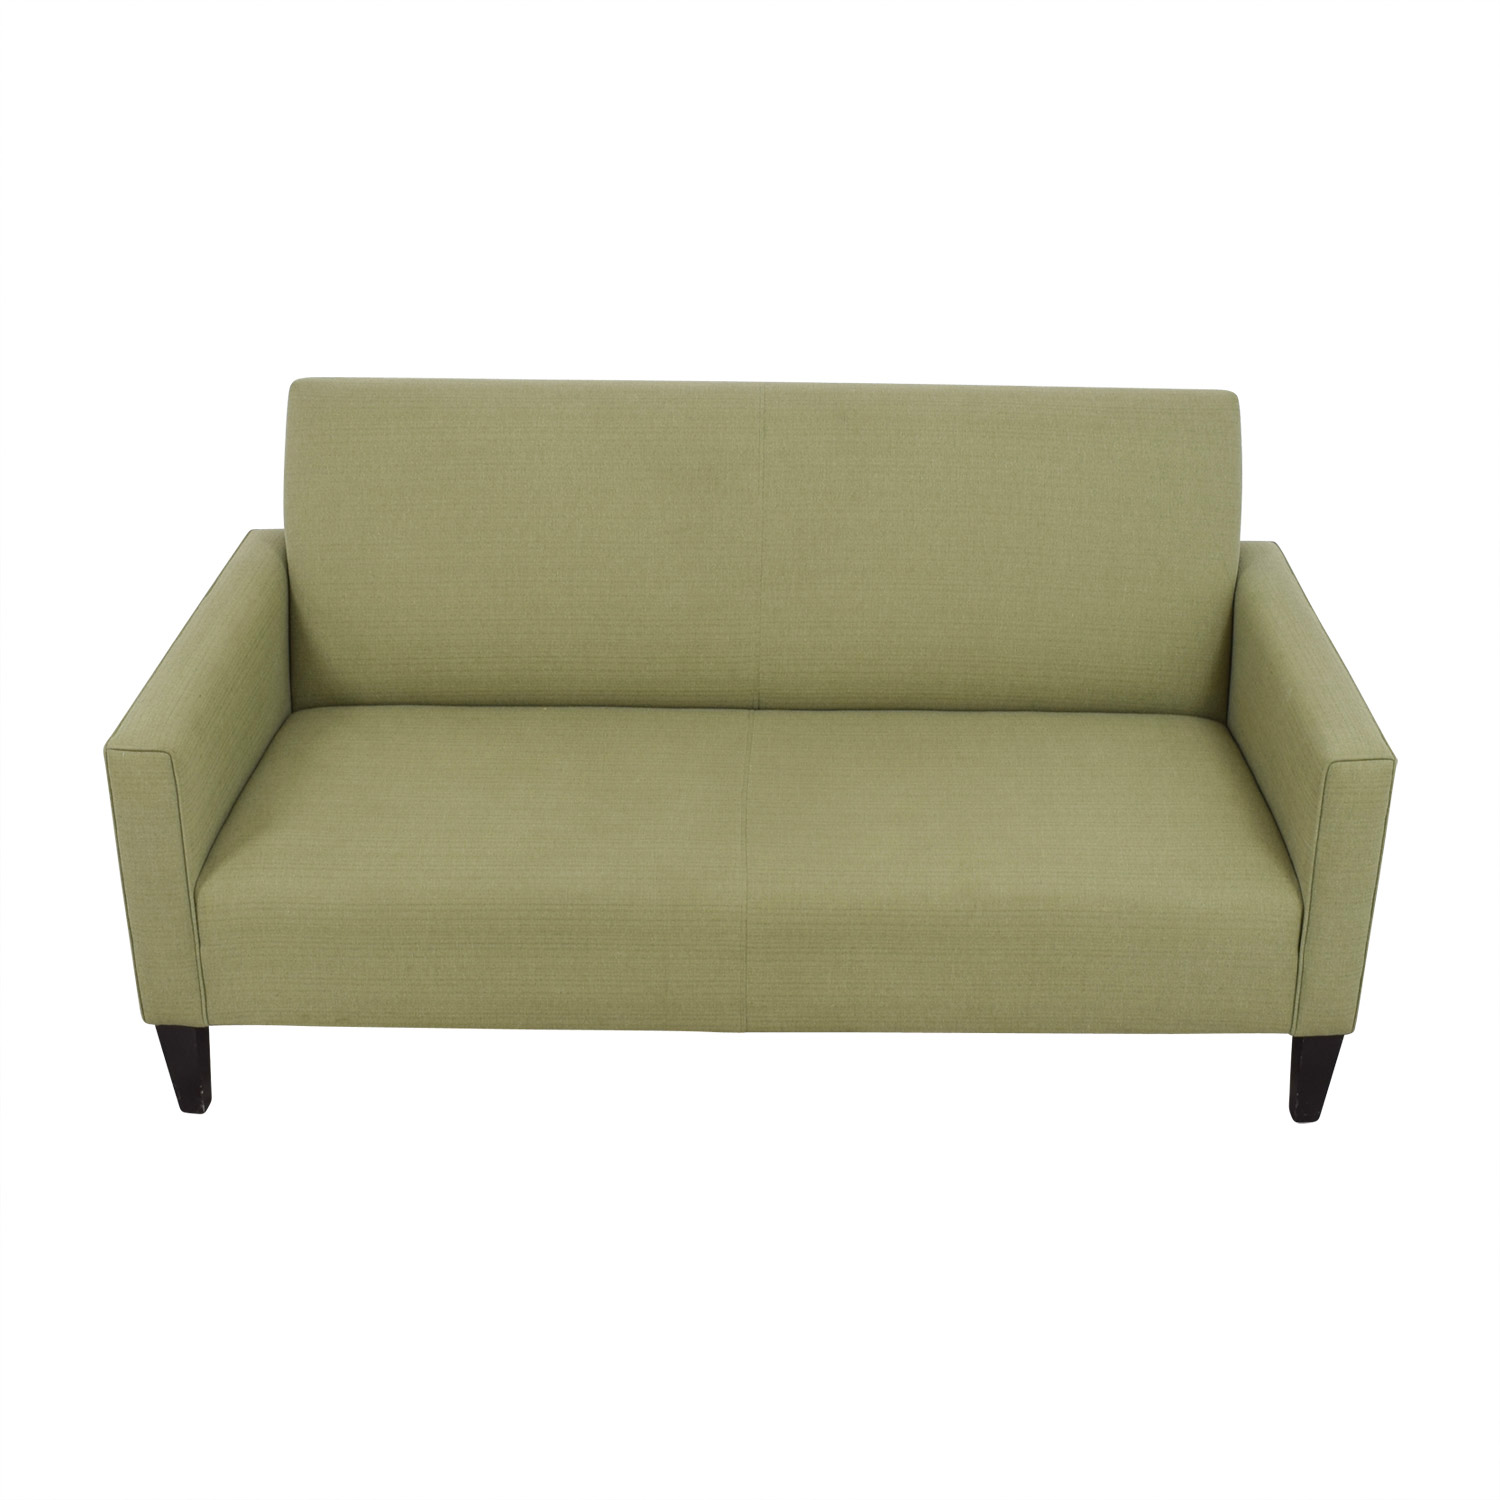 crate and barrel sofa cushion replacement bed cheap 80 off moss green single